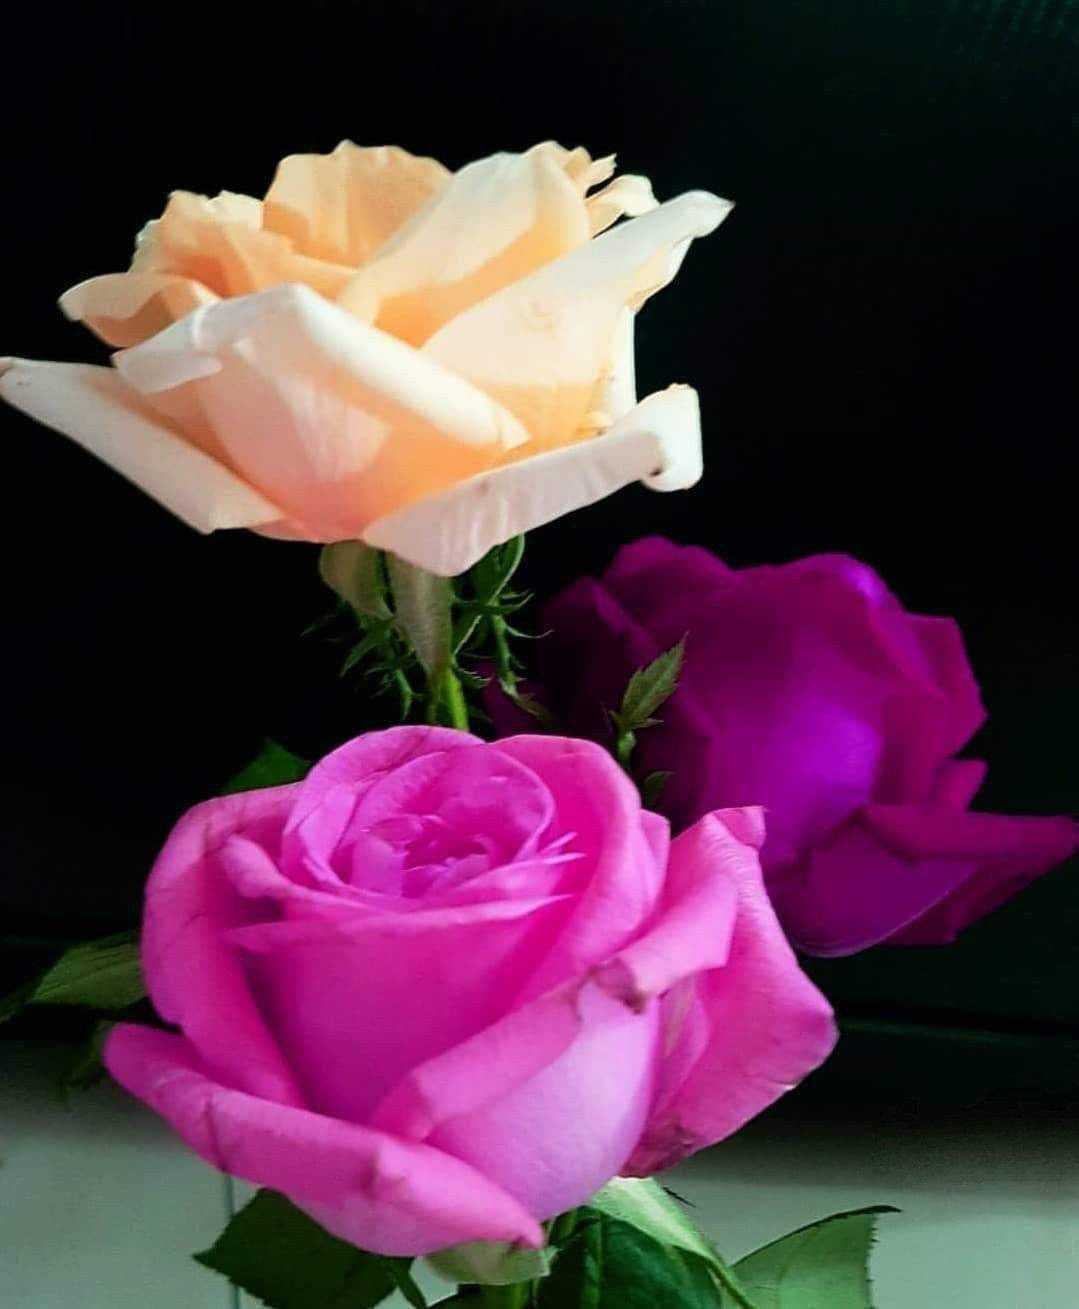 Pin By Nurcan Kara On Rose In 2020 Beautiful Roses Amazing Flowers Flowers Bouquet